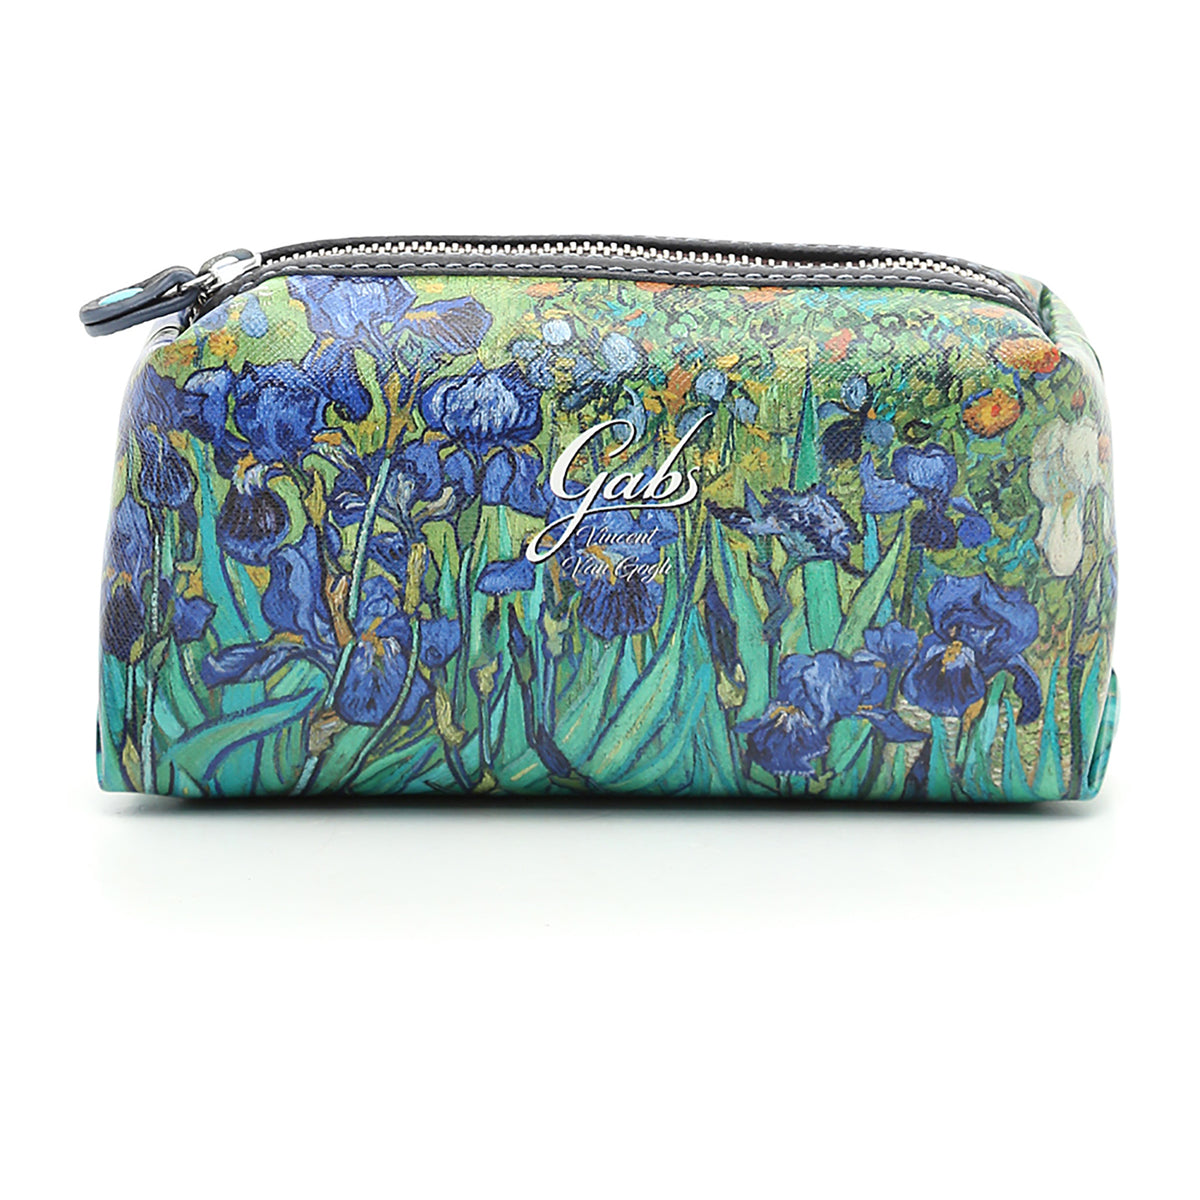 Cosmetics Bag featuring Van Gogh's Irises, by Gabs, Italy-Front View | Getty Store